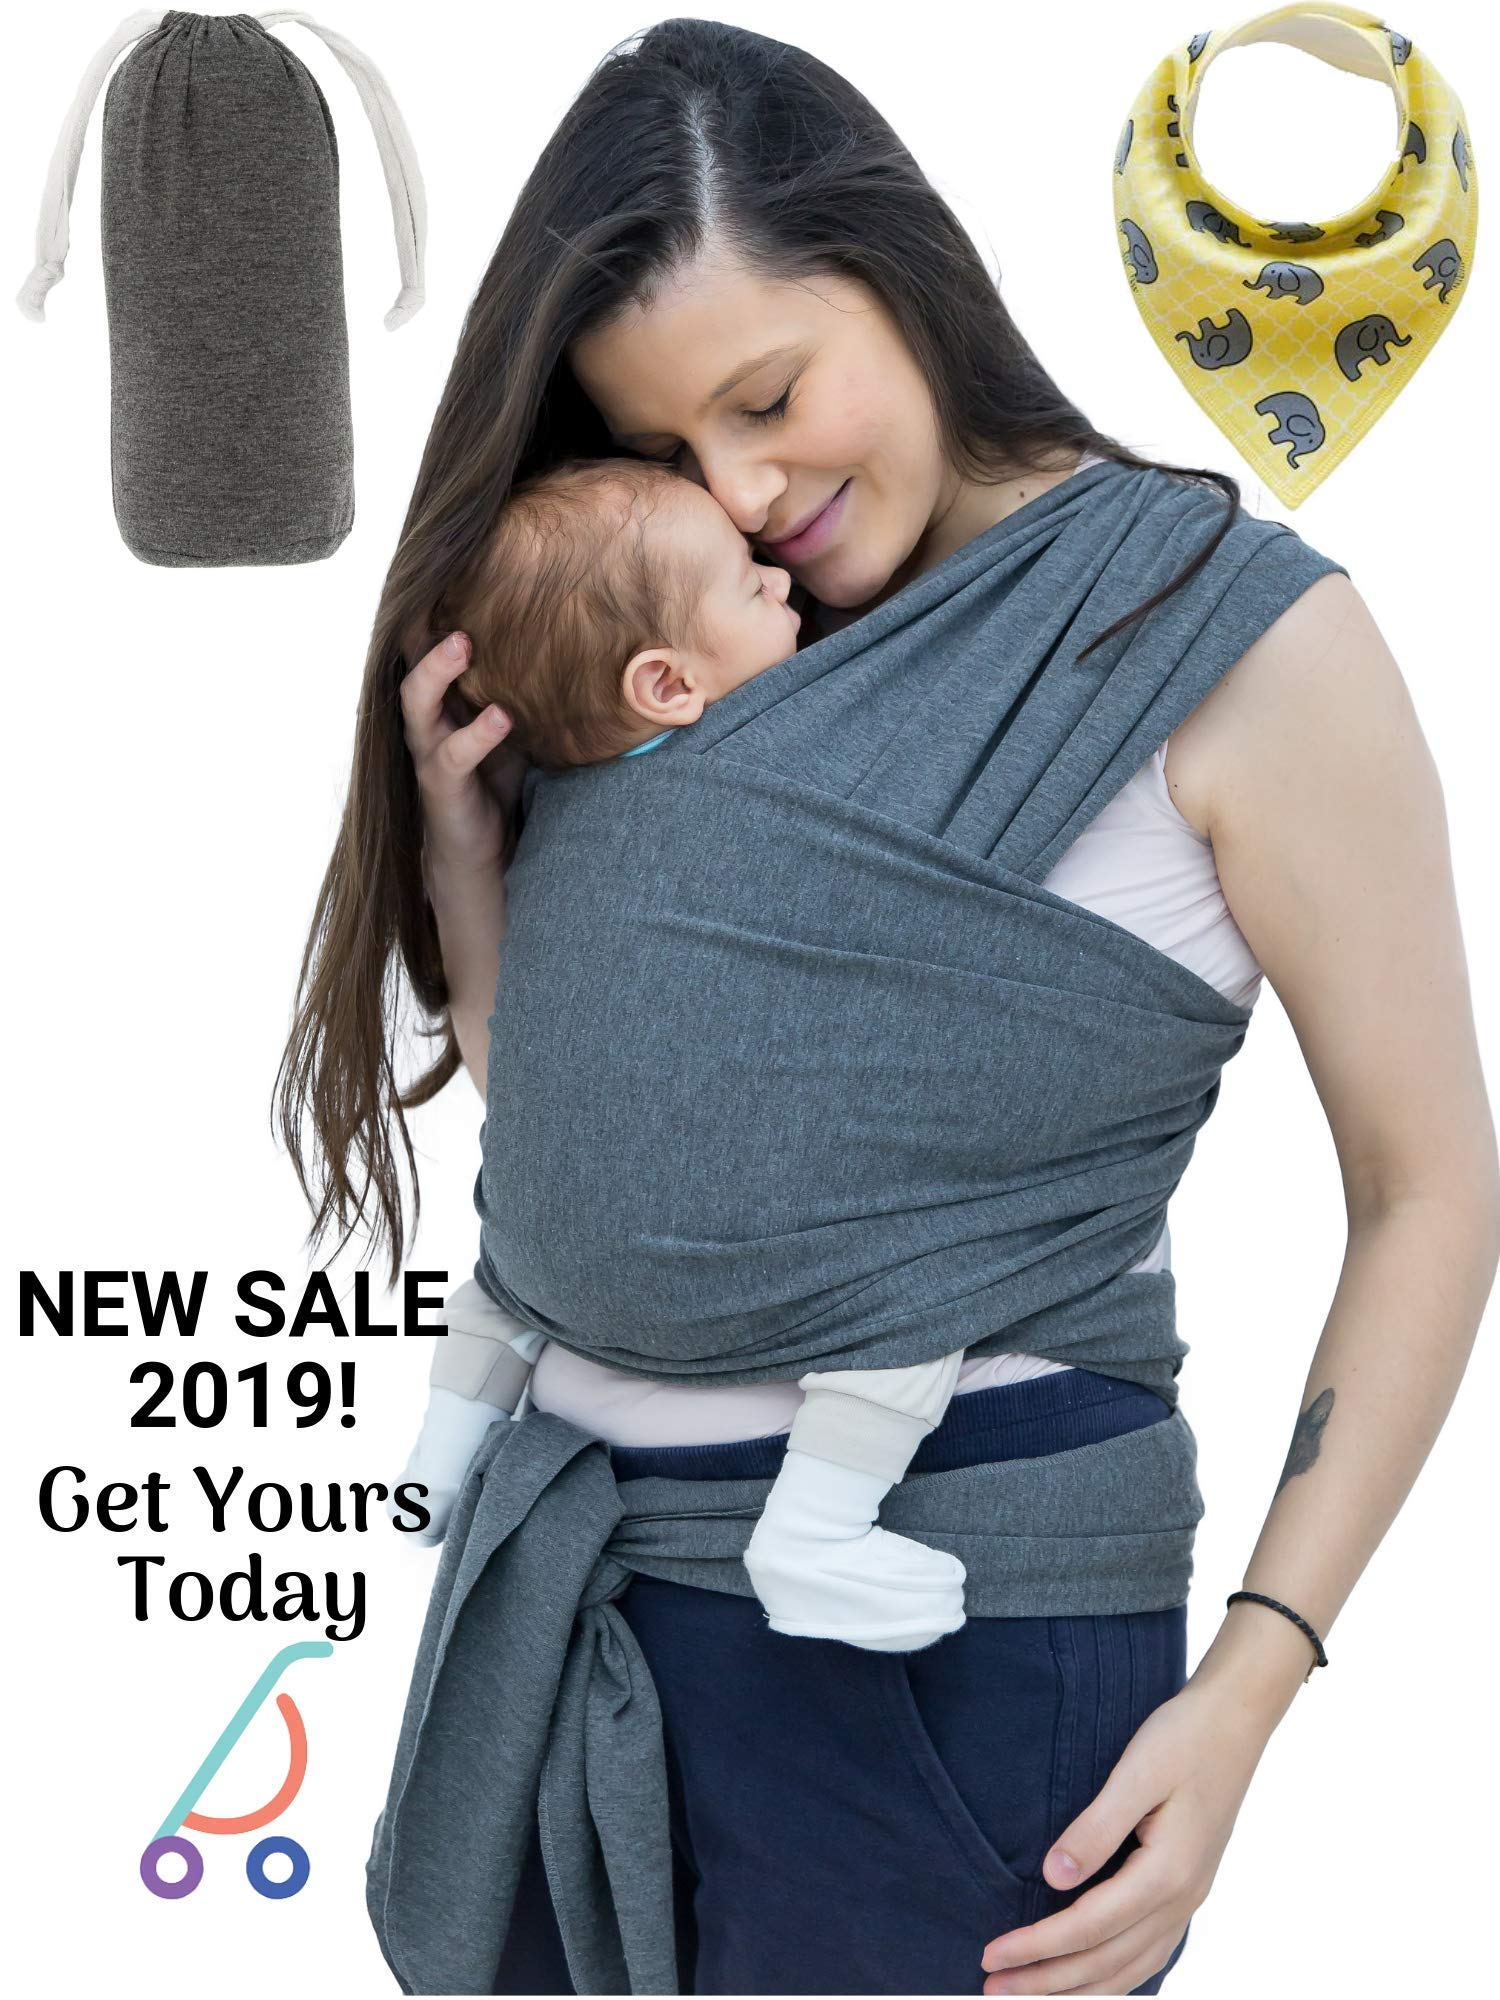 Unisex Fular Baby Carrier Sling - Forward Facing Ergonomic Baby Carrier Wraps for Moms and Dads Body and Chest Adjustable Size for a Newborn or Toddler - Great GlFT - Bonus Bandana Bib